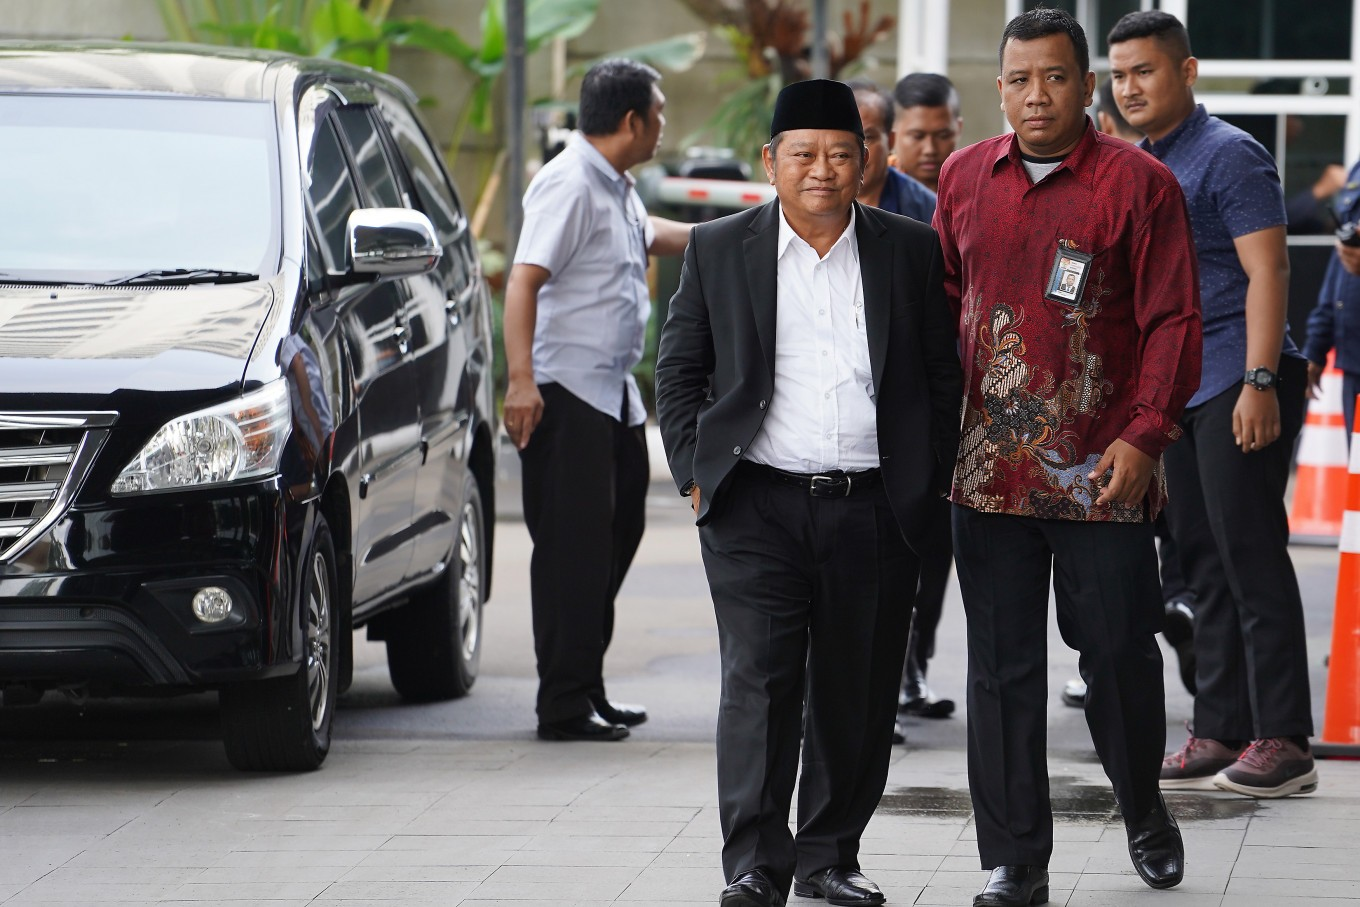 KPK scores first arrest in East Java after new leadership, law revision